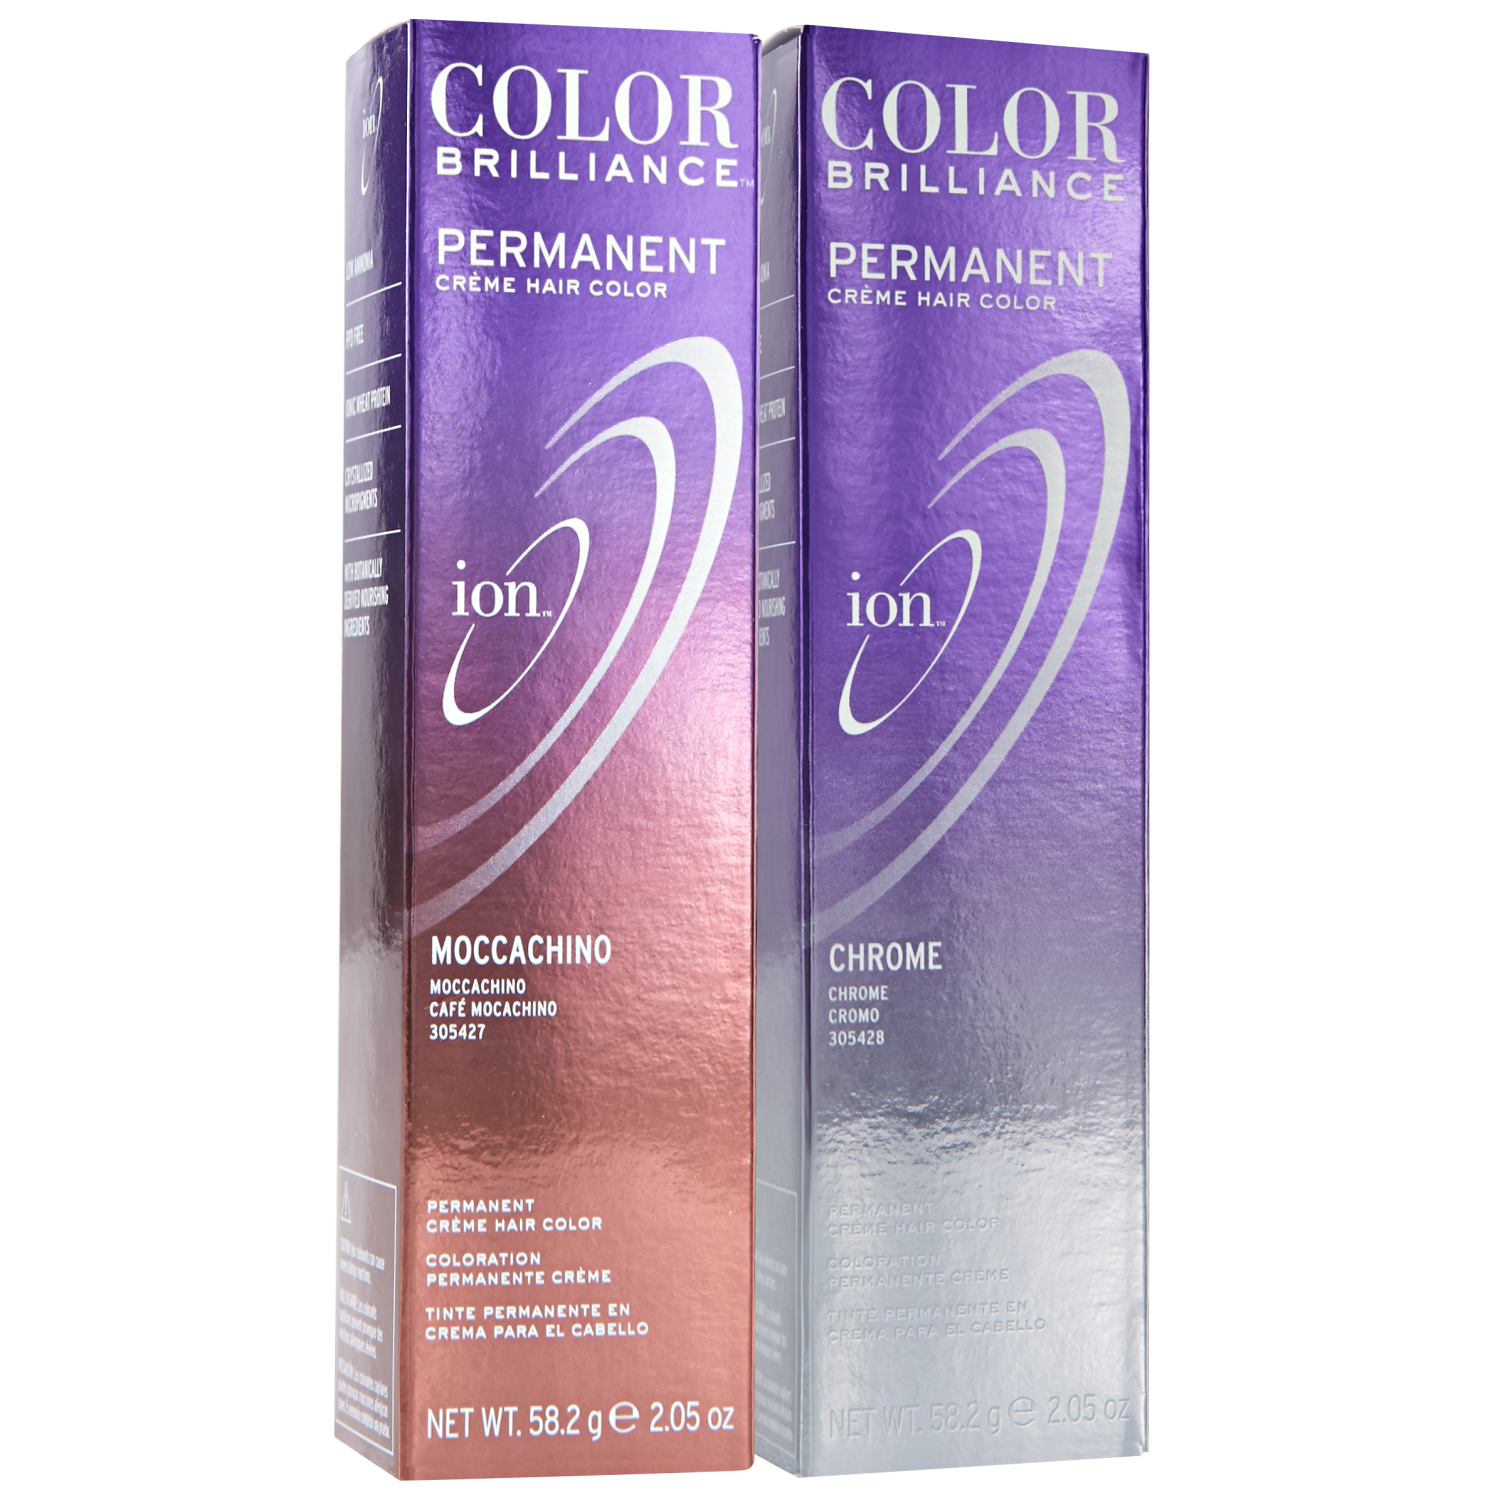 Ion Color Brilliance Permanent Creme 7va Chrome Ion At Home Mix 1 1 With Developer Color Beauty Secrets Natural Hair Styles